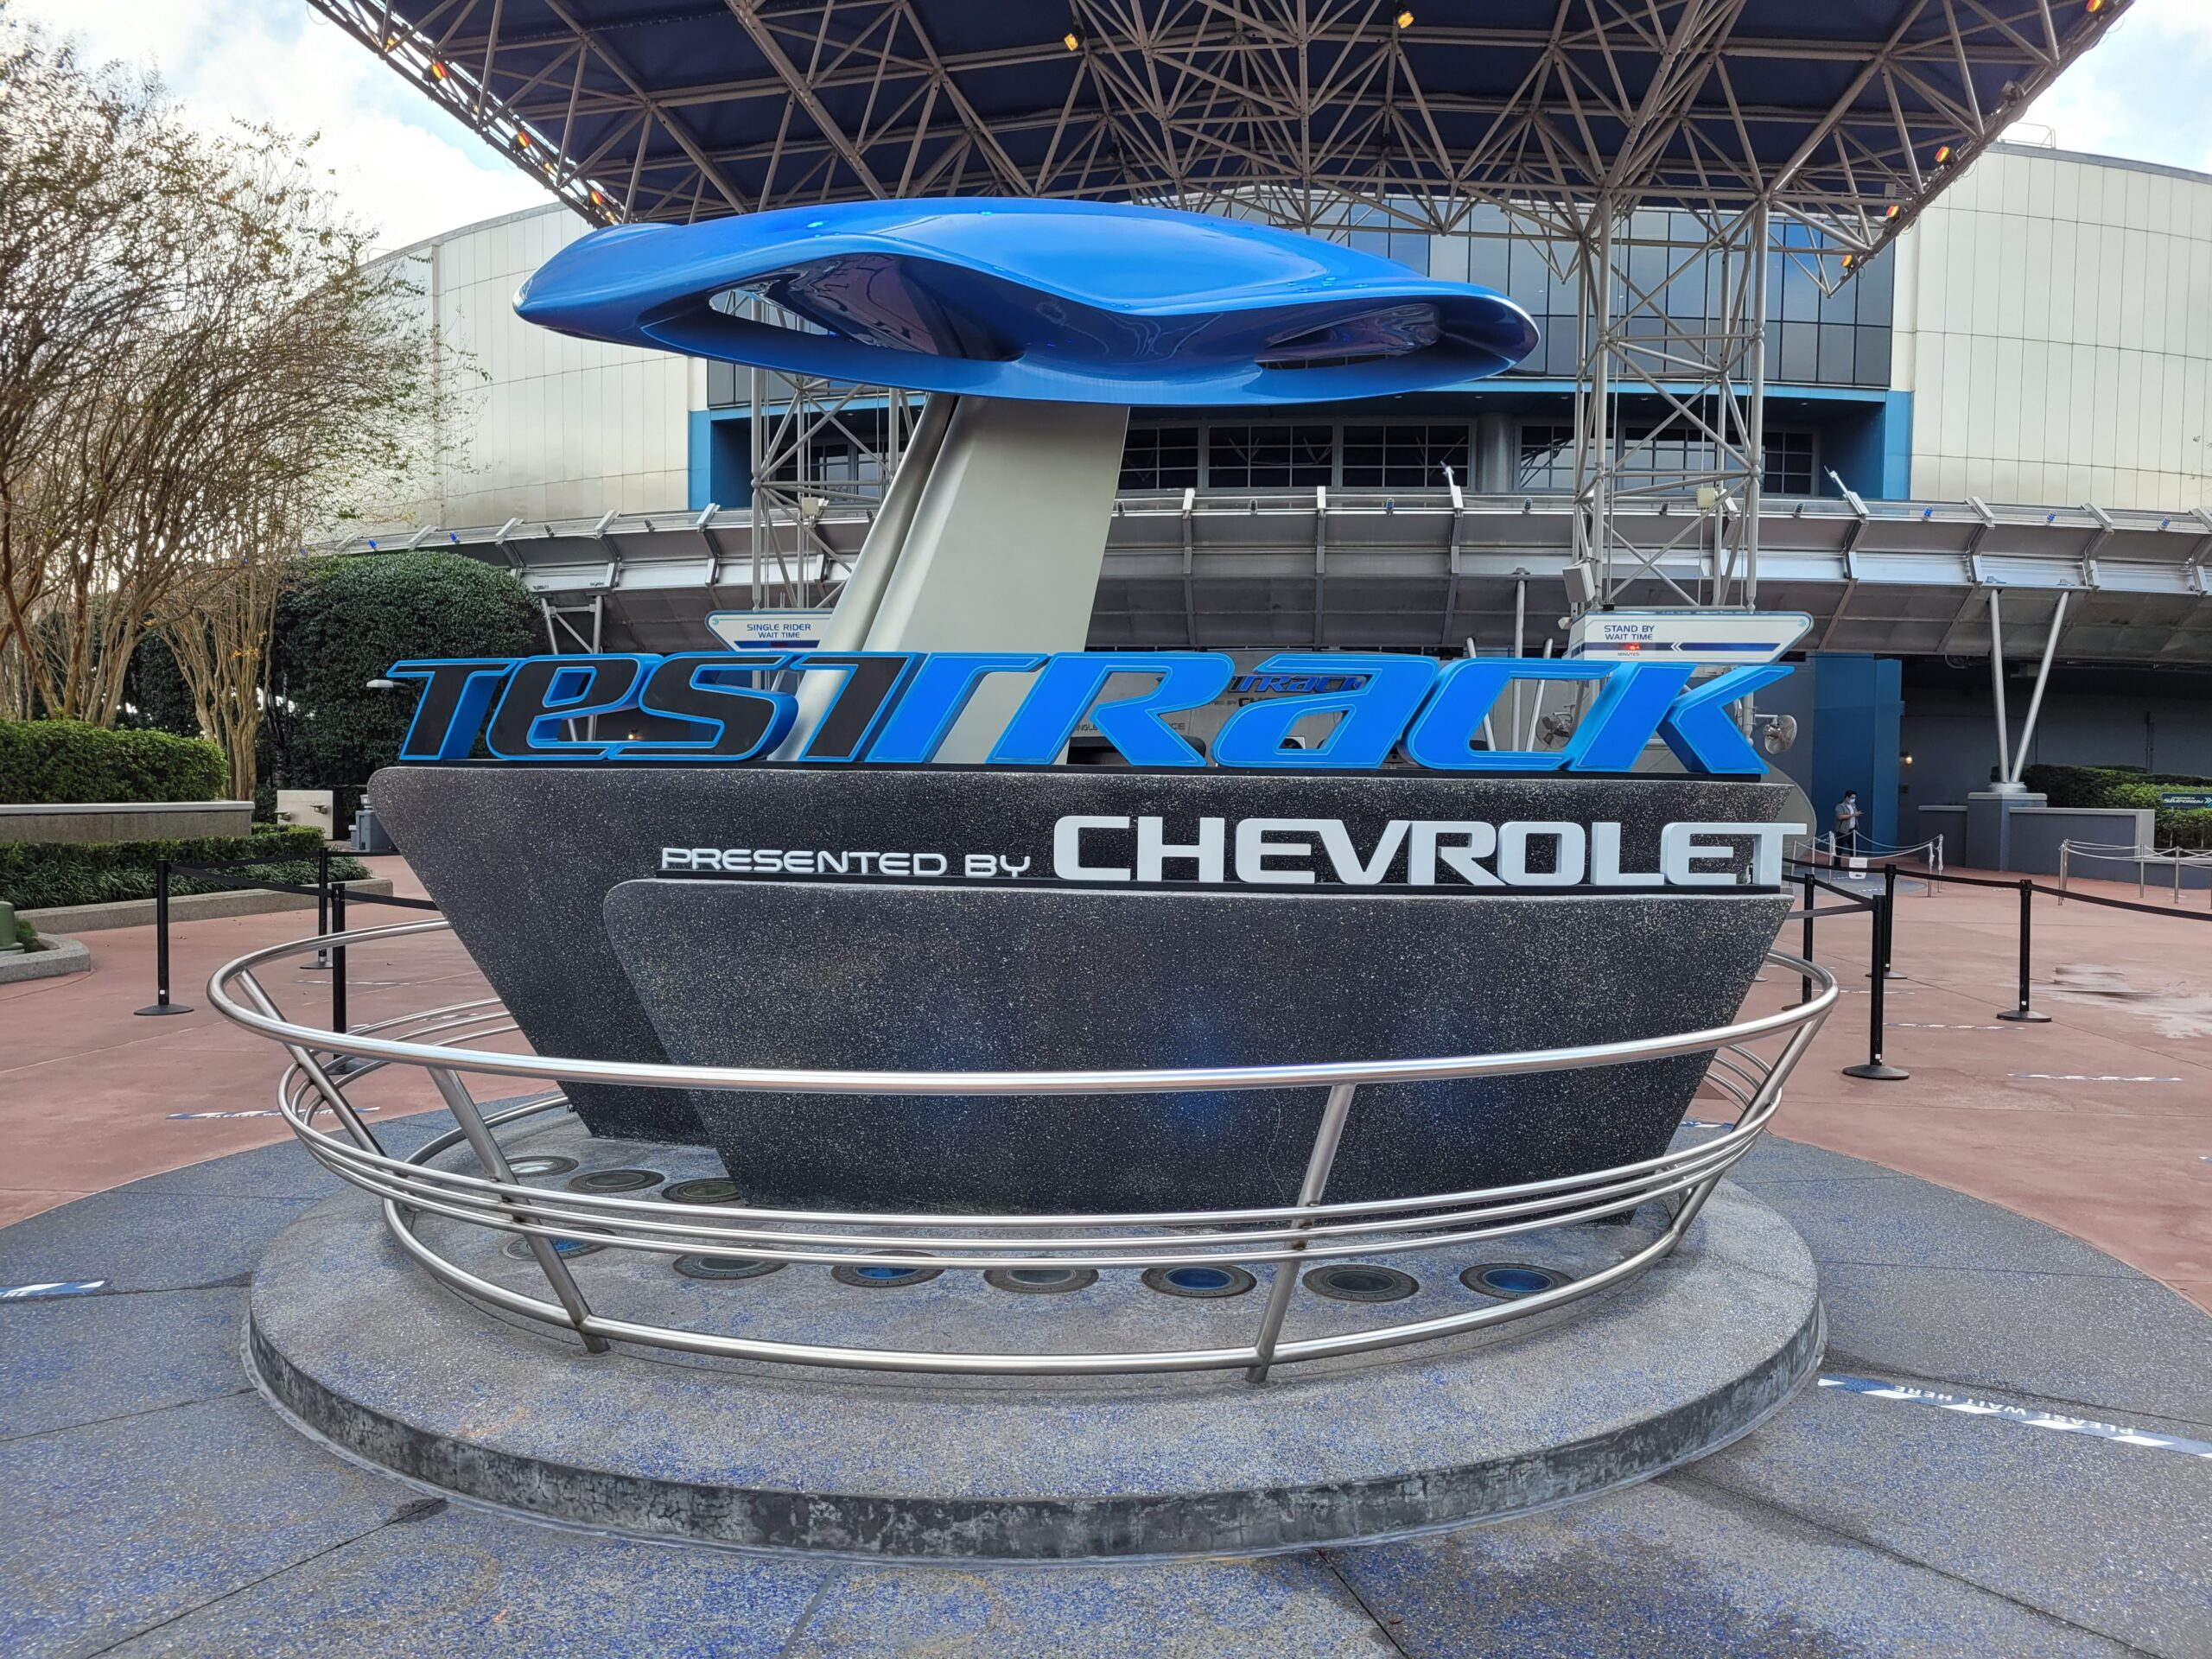 Disney's Test Track, the fastest ride at the Disney Parks